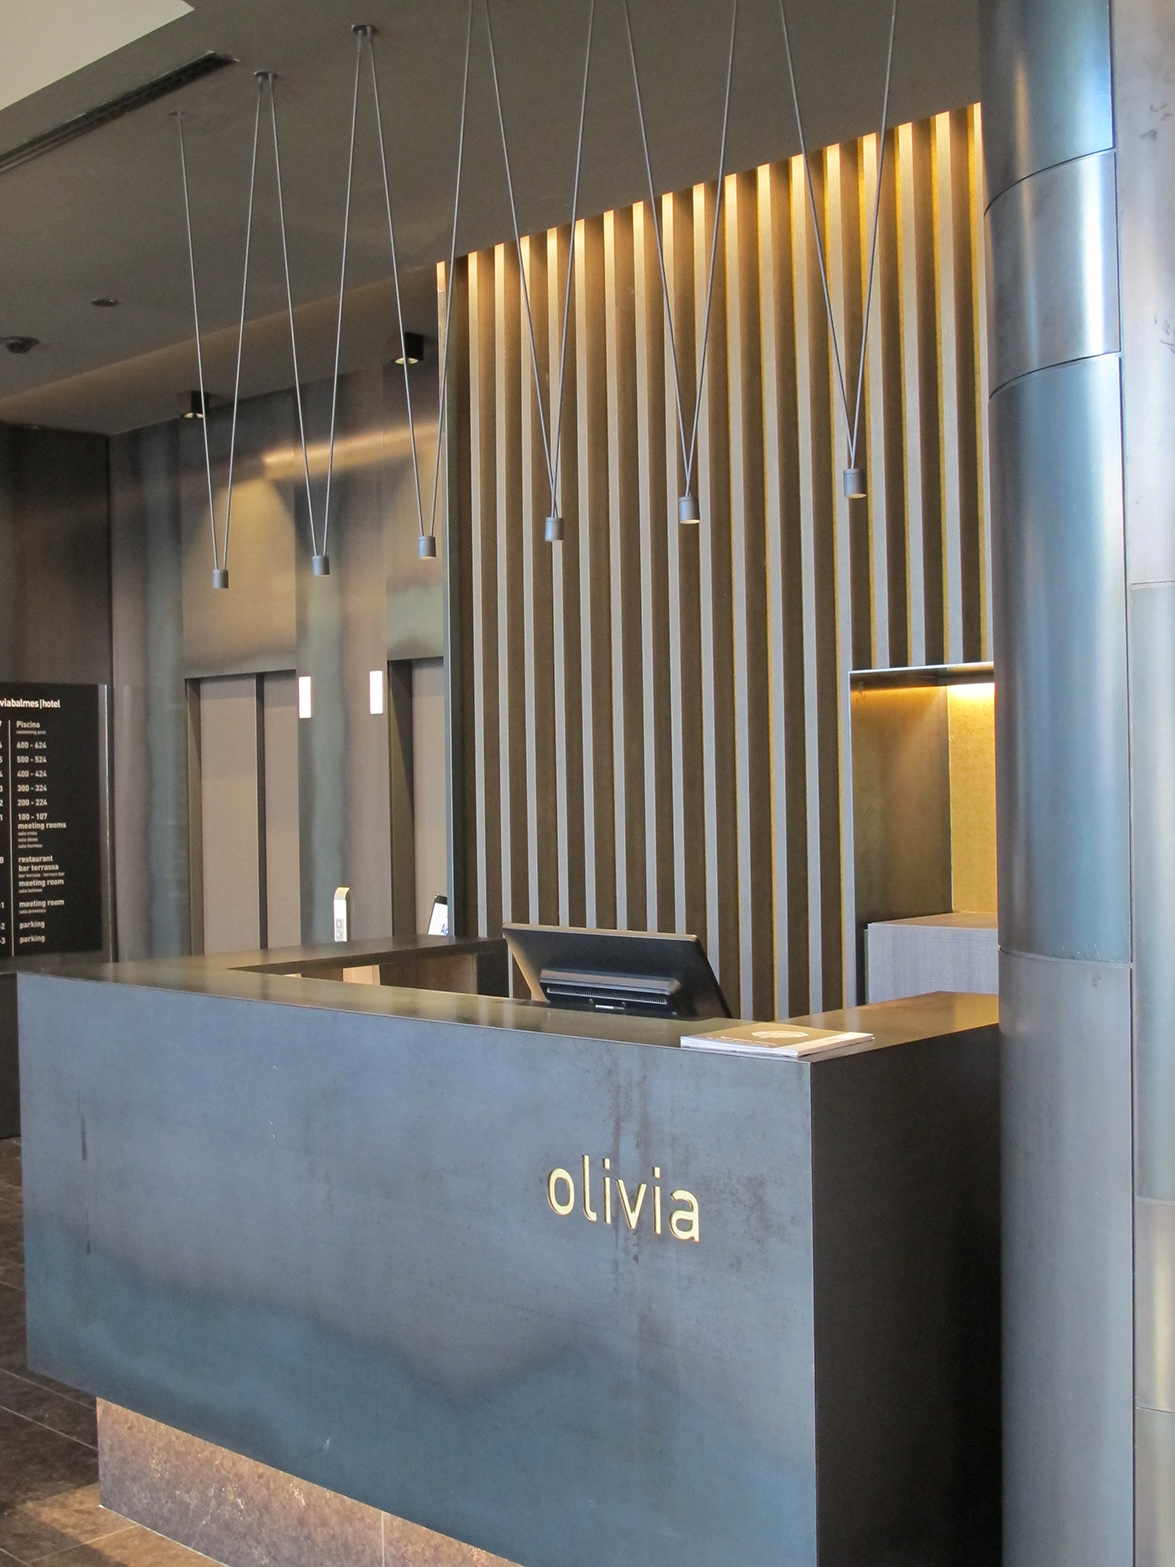 match_hotel_olivia_barcelona_highlight